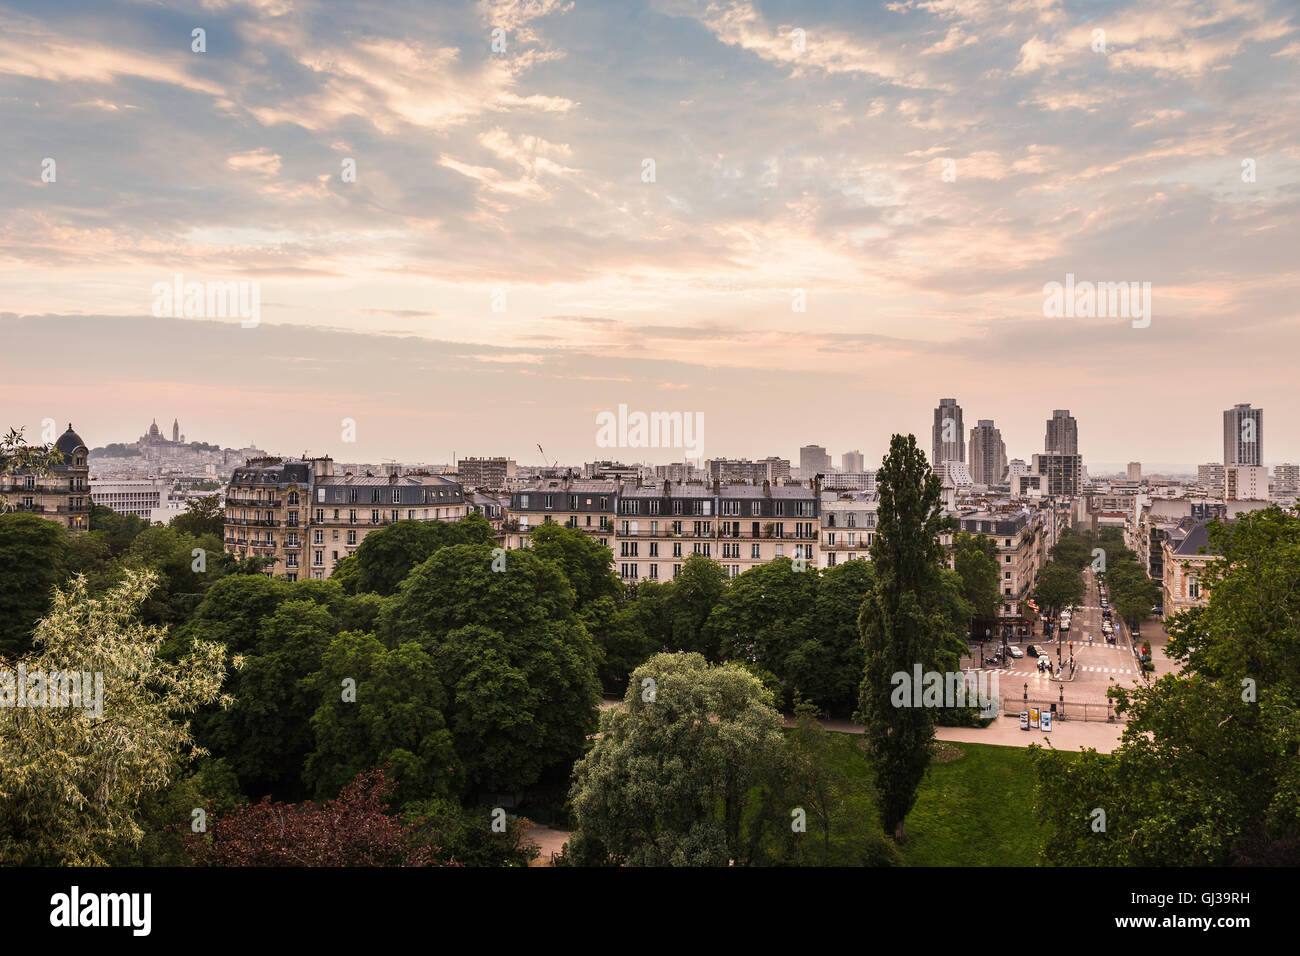 View from Parc des Buttes-Chaumont, Paris, France - Stock Image